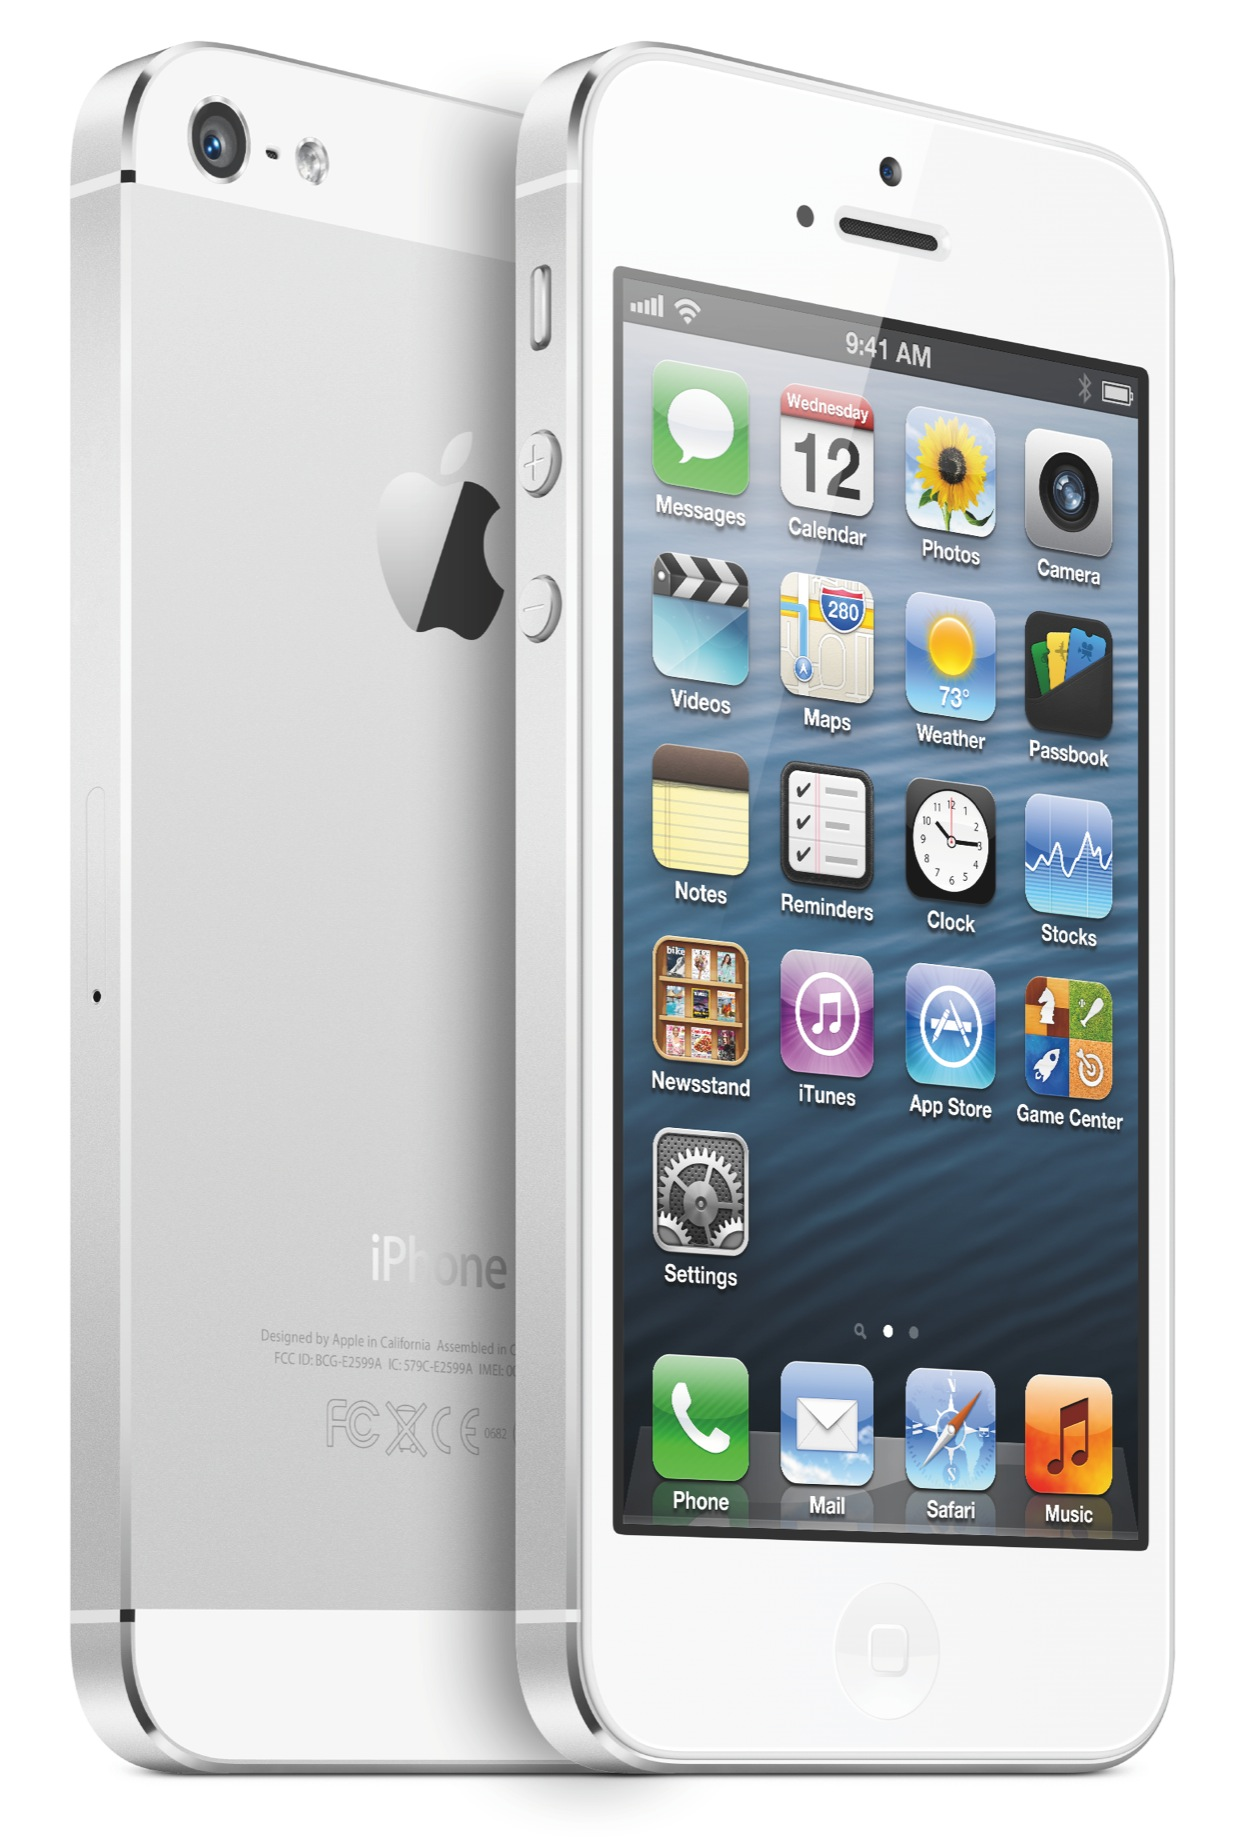 iPhone 5 (two-up, white, front, back, left-angled)